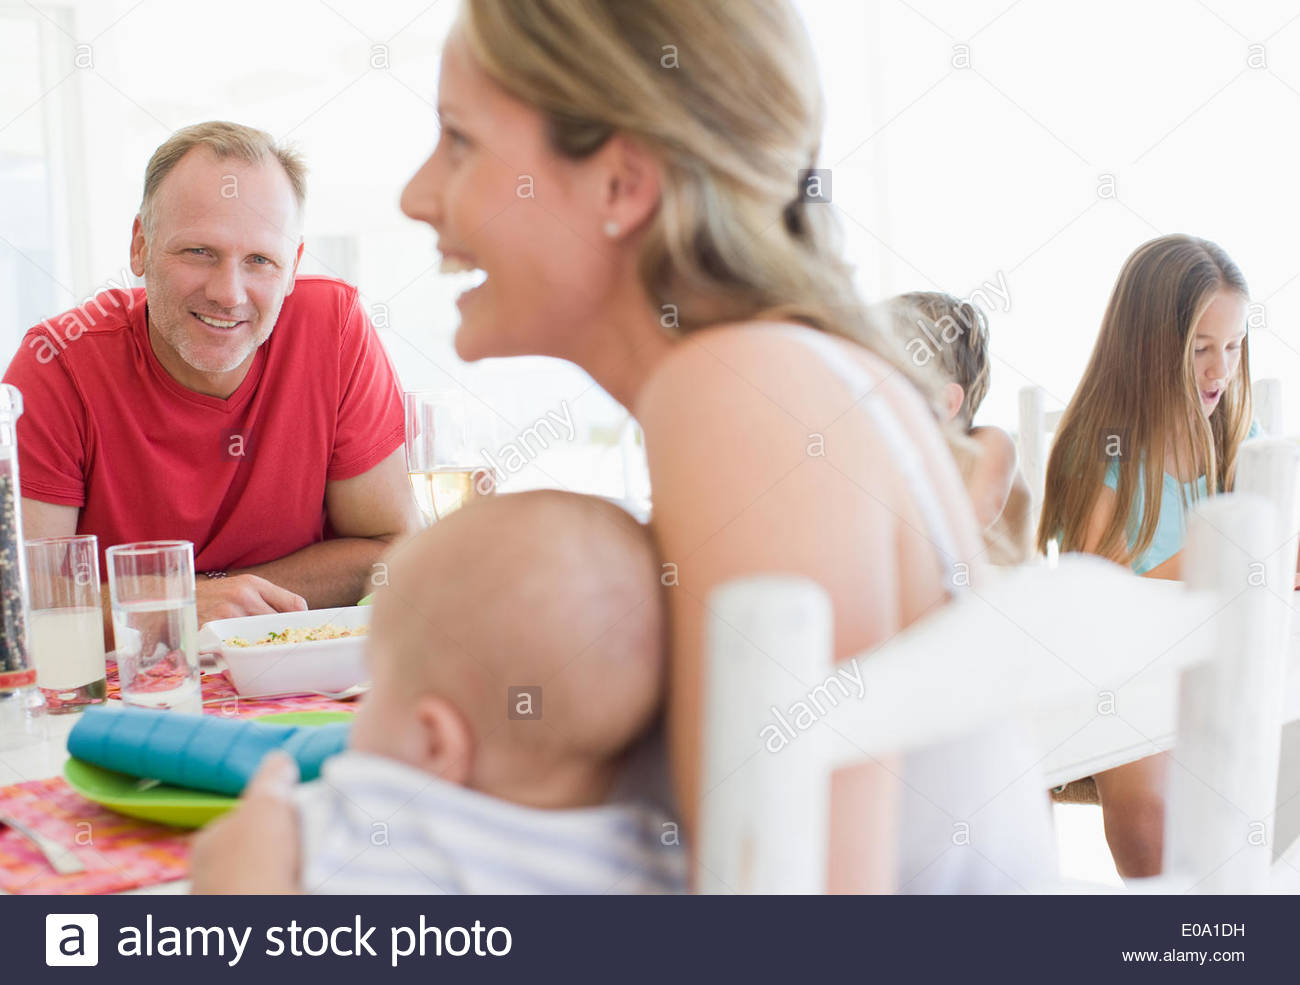 Family eating lunch together - Stock Image